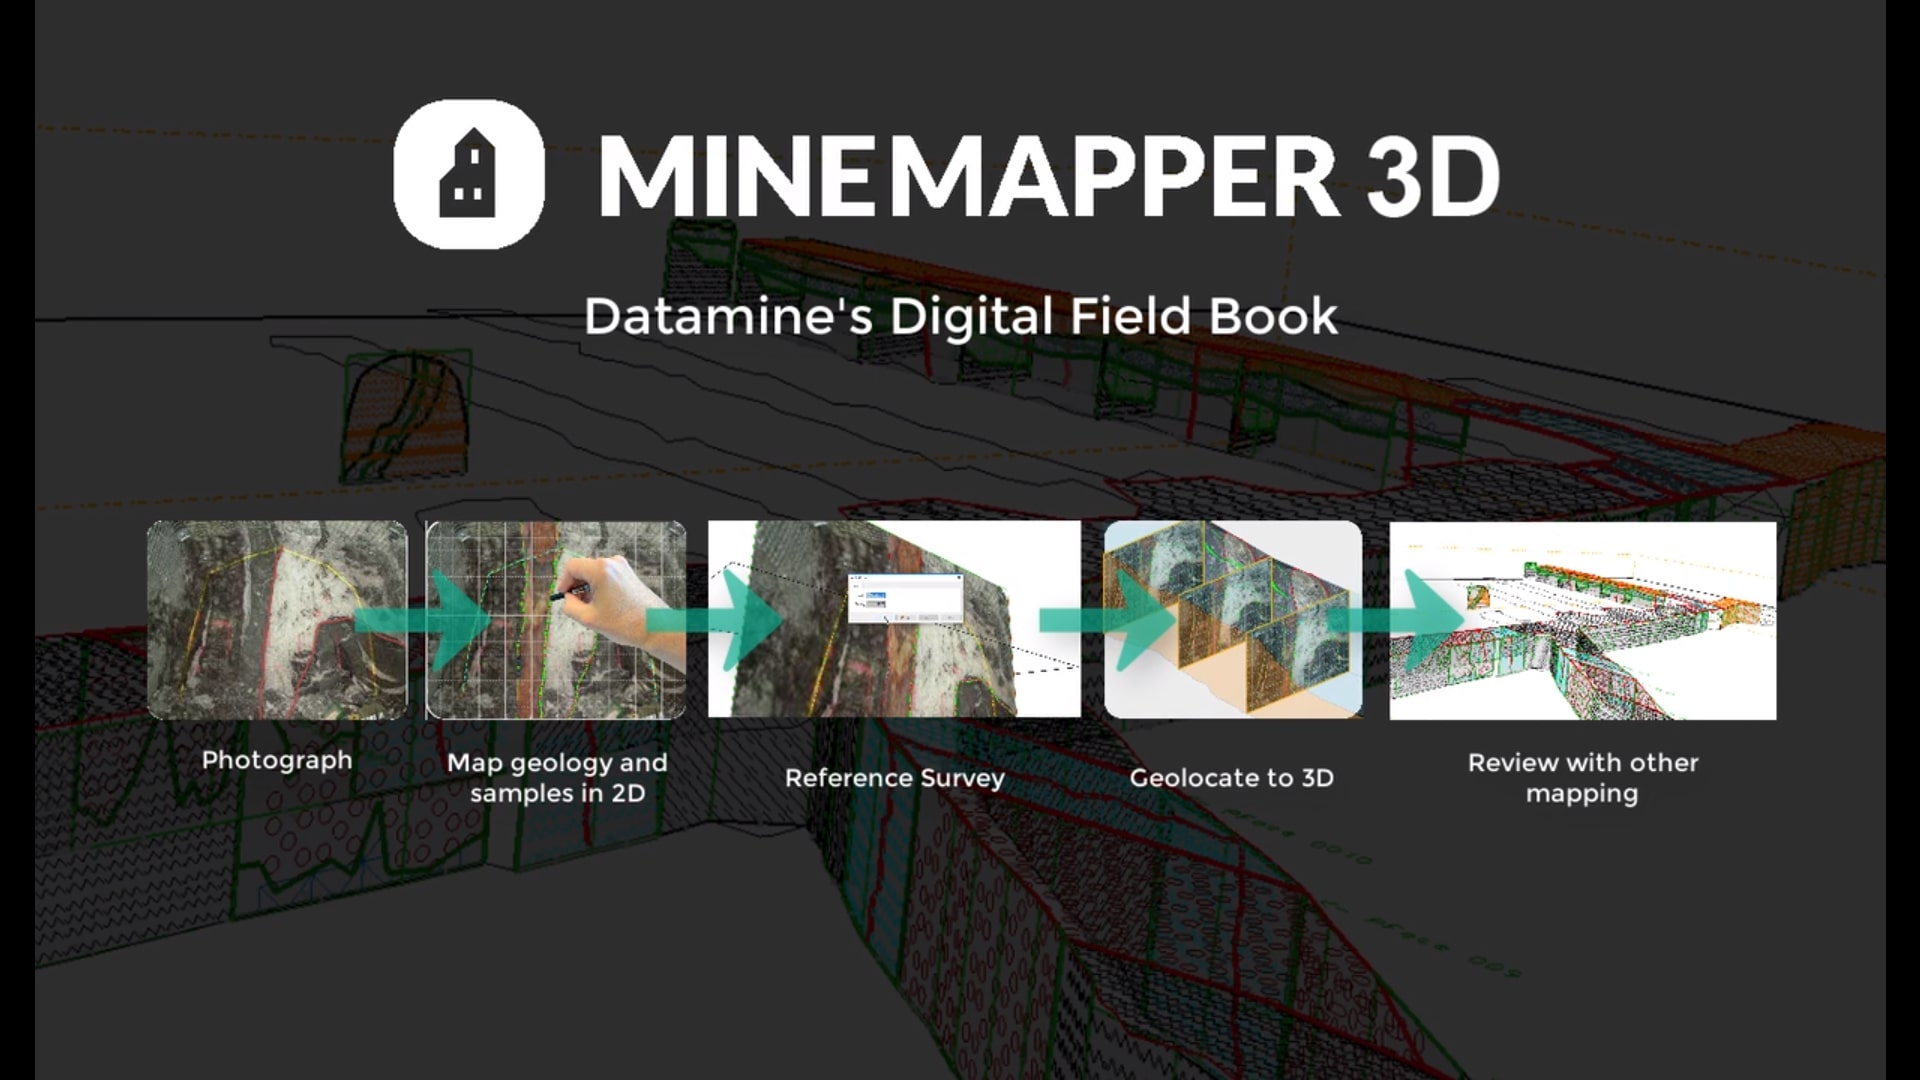 Screenshot of the MineMapper 7 Overview Video showing the steps to use the software on a touch enabled device. The steps are, photograph, map geology and samples in 2D, reference survey, geolocare to 3D and review with other mapping - - 3D mine mapping software